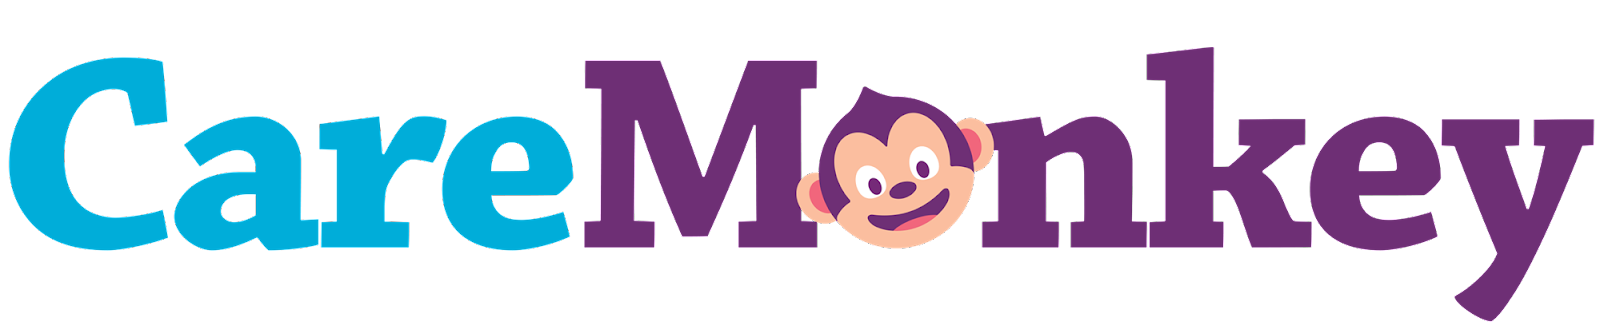 CareMonkey-Logo-Horizontal-150419.png